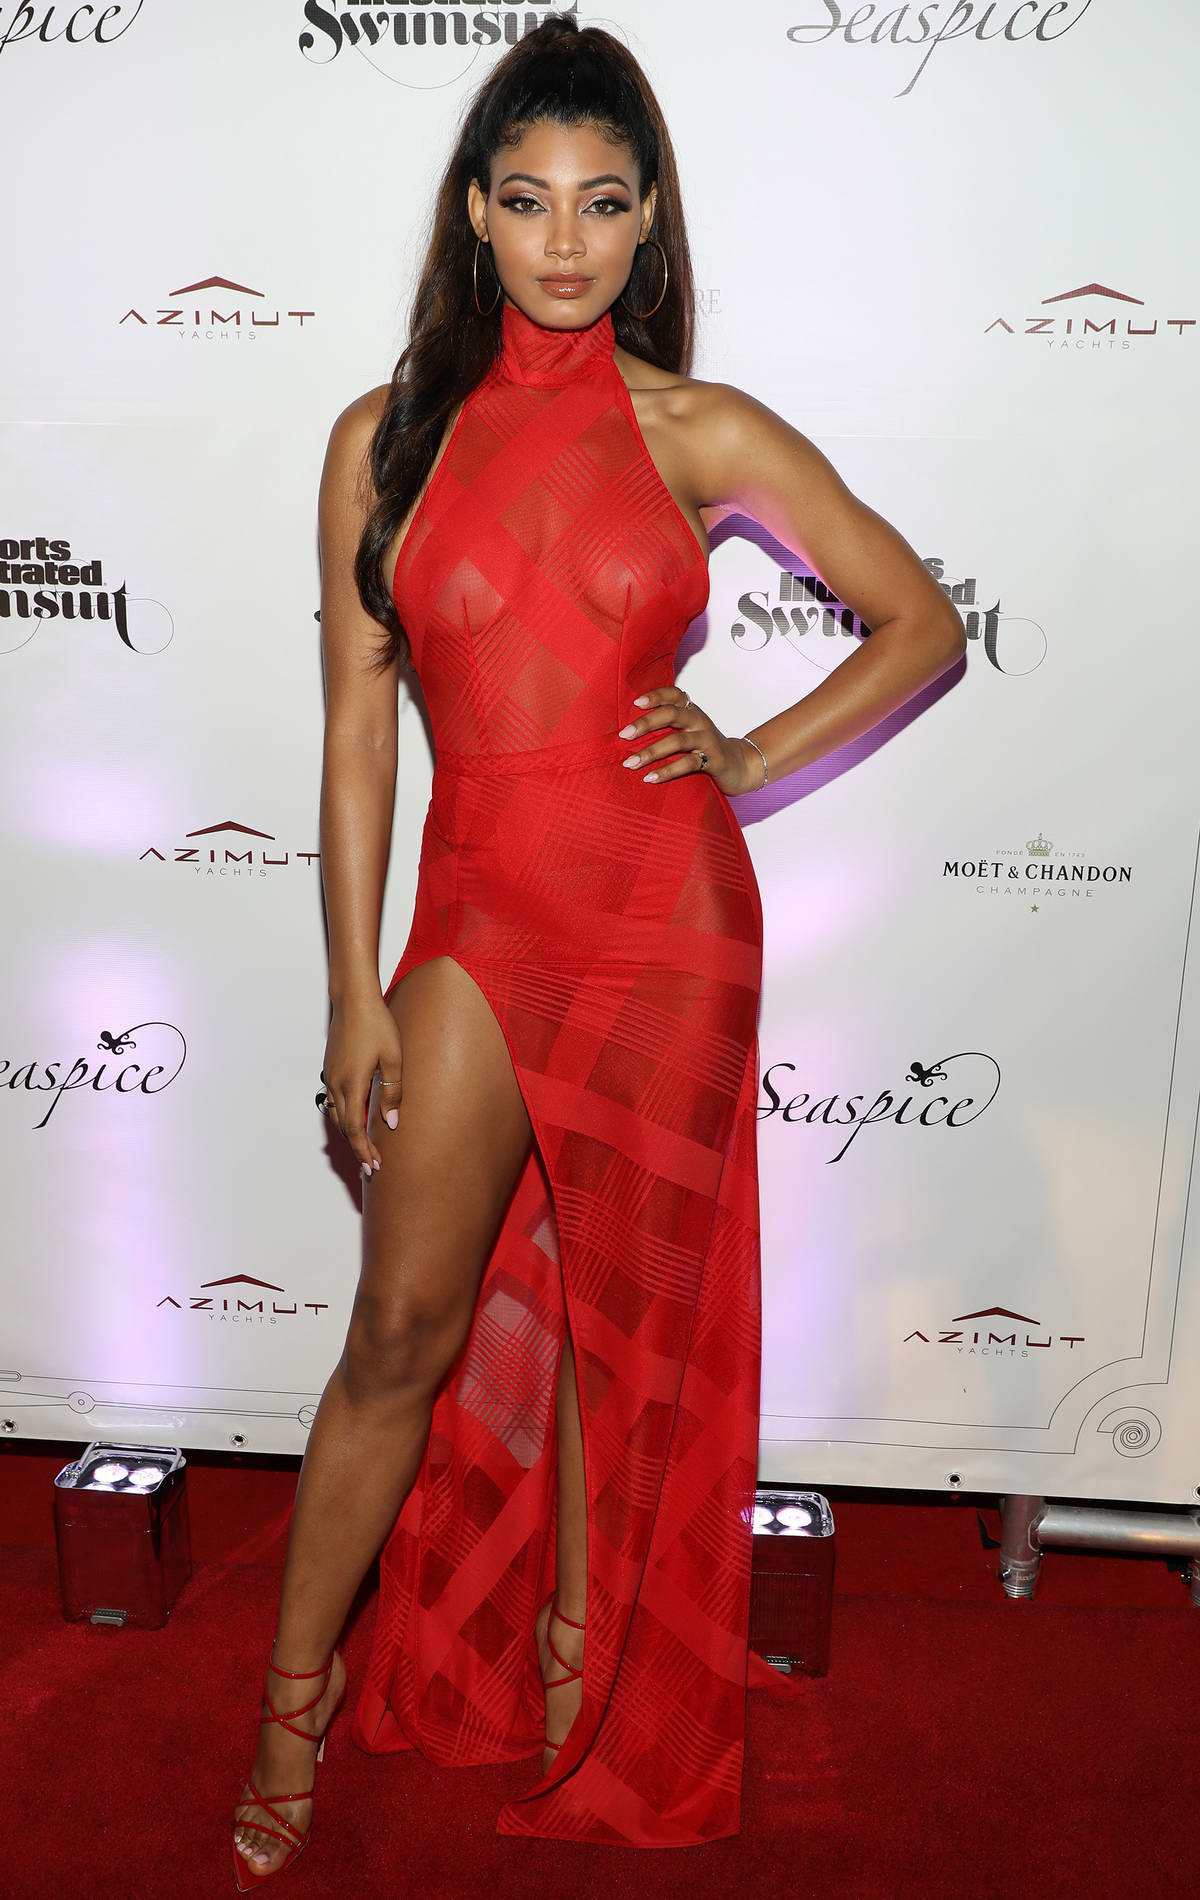 Danielle Herrington attends Sports Illustrated Swimsuit 2019 Issue Launch at Seaspice in Miami, Florida